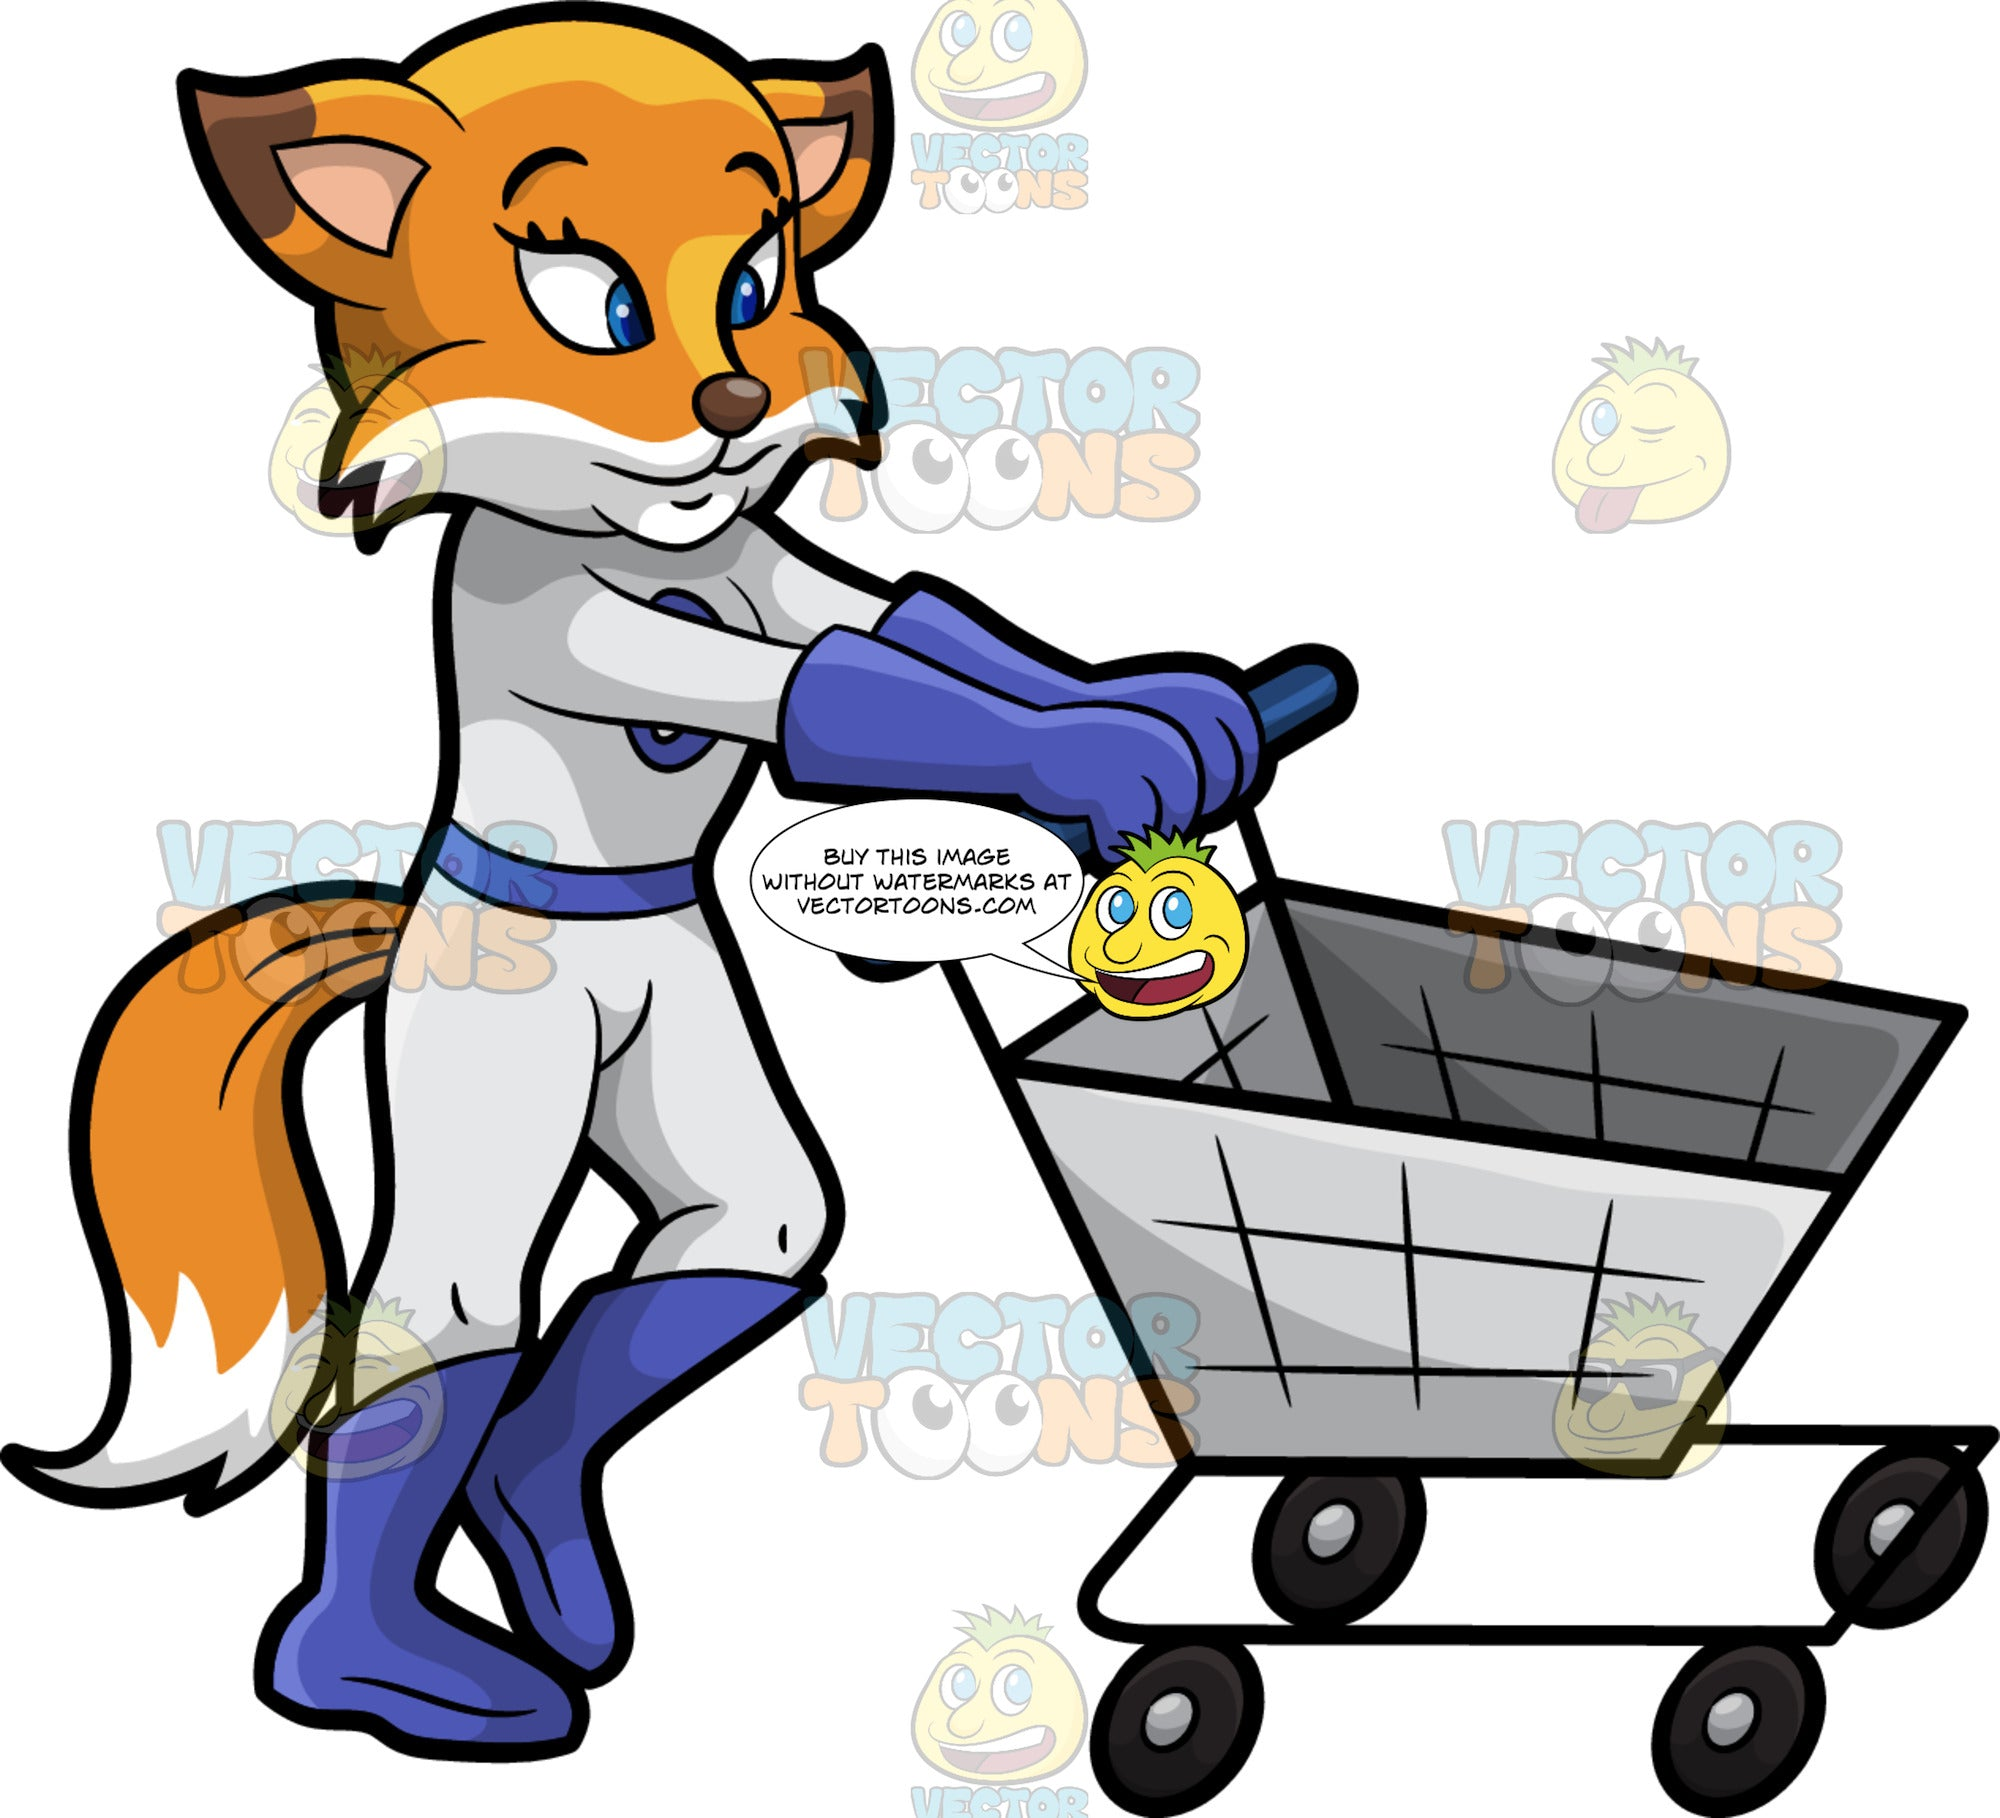 Flossy Fox Pushing An Empty Grocery Cart. A pretty red fox wearing a fitted white one piece outfit with blue boots and gloves, and a tooth symbol on the chest, standing behind an empty grocery cart and pushing it around as she shops for healthy food